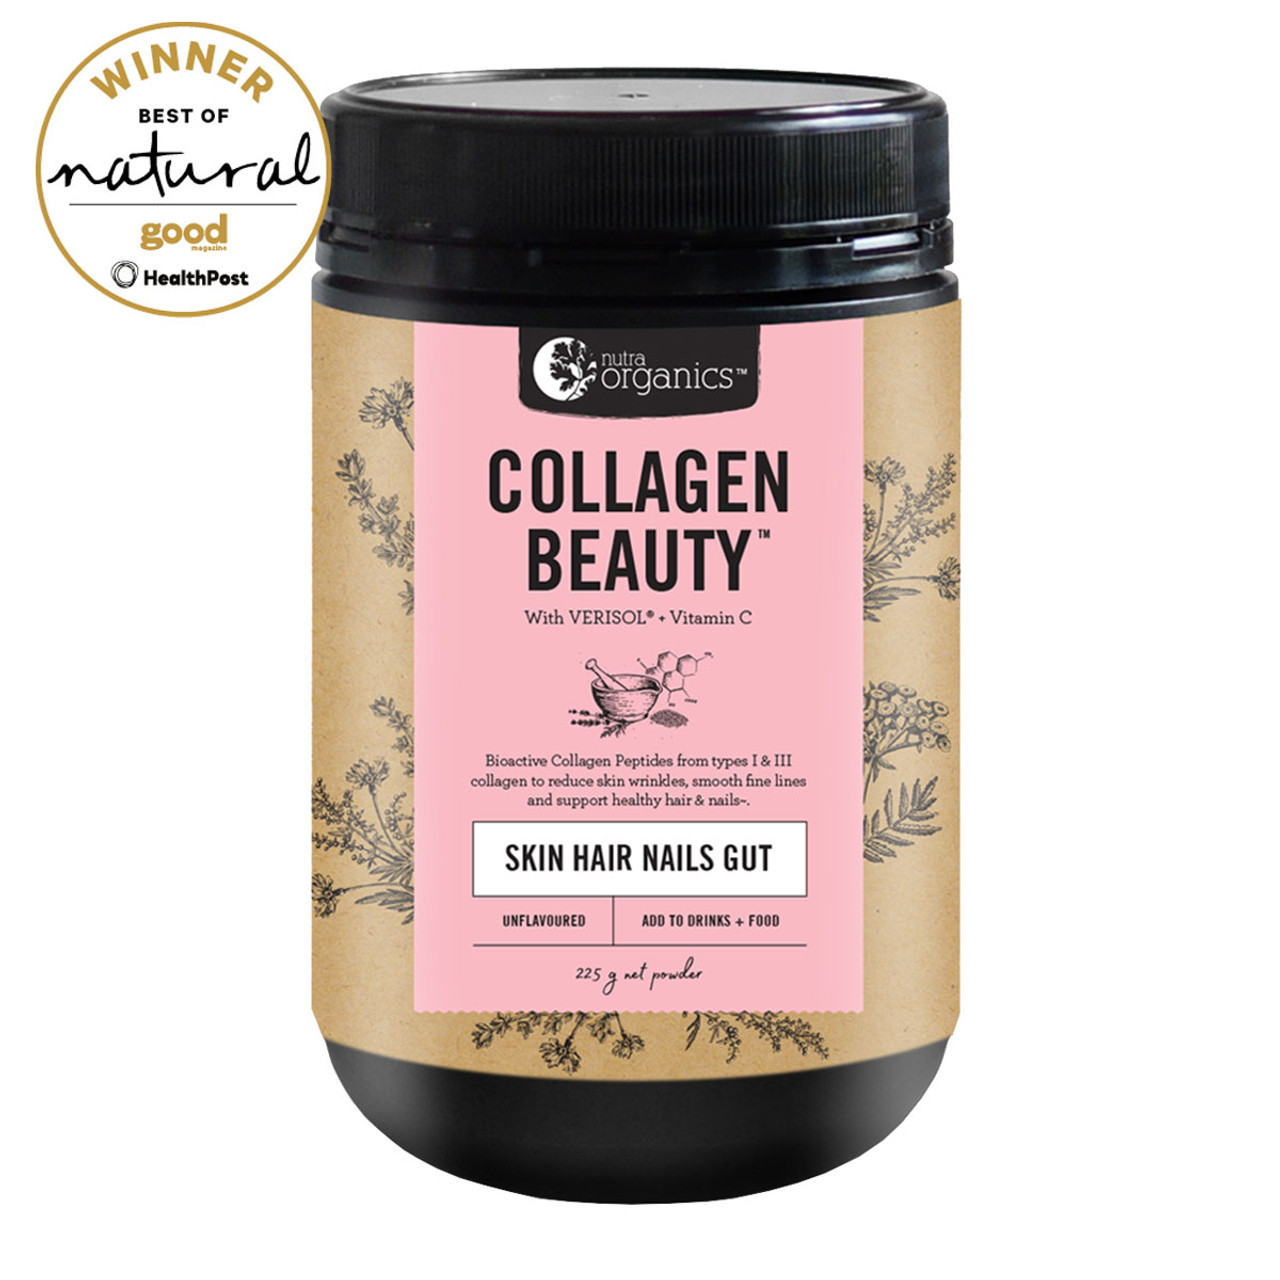 Nutra Organics Collagen Beauty With Verisol +C